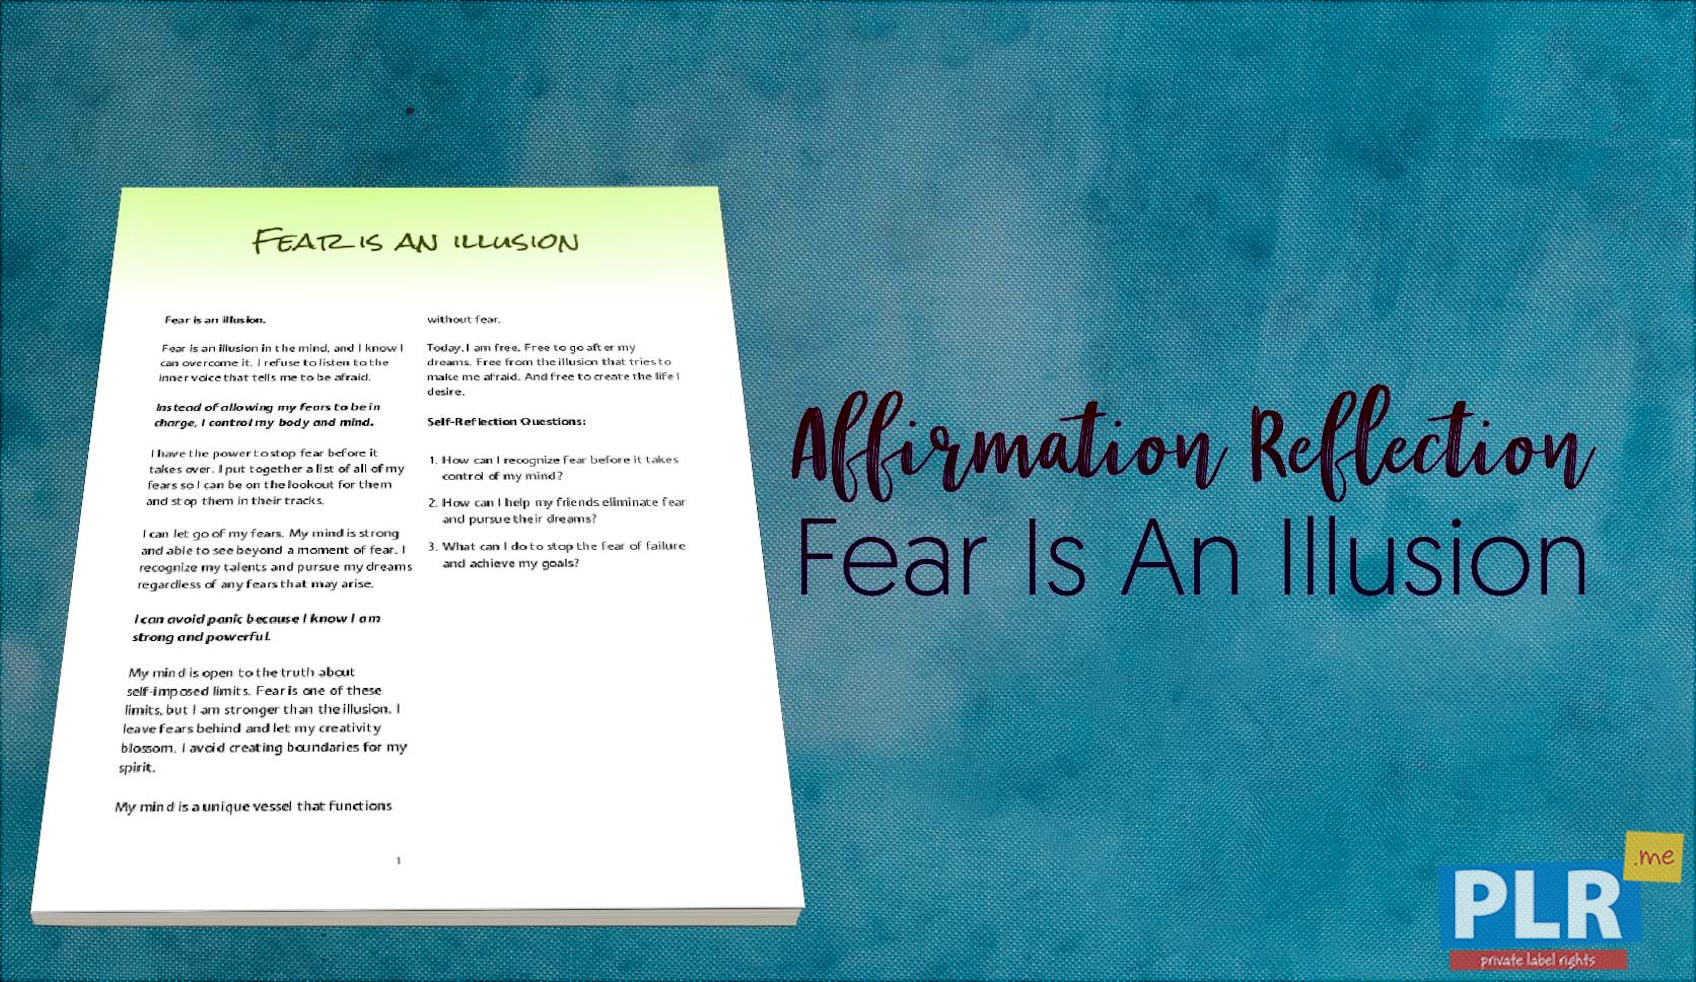 Fear Is An Illusion